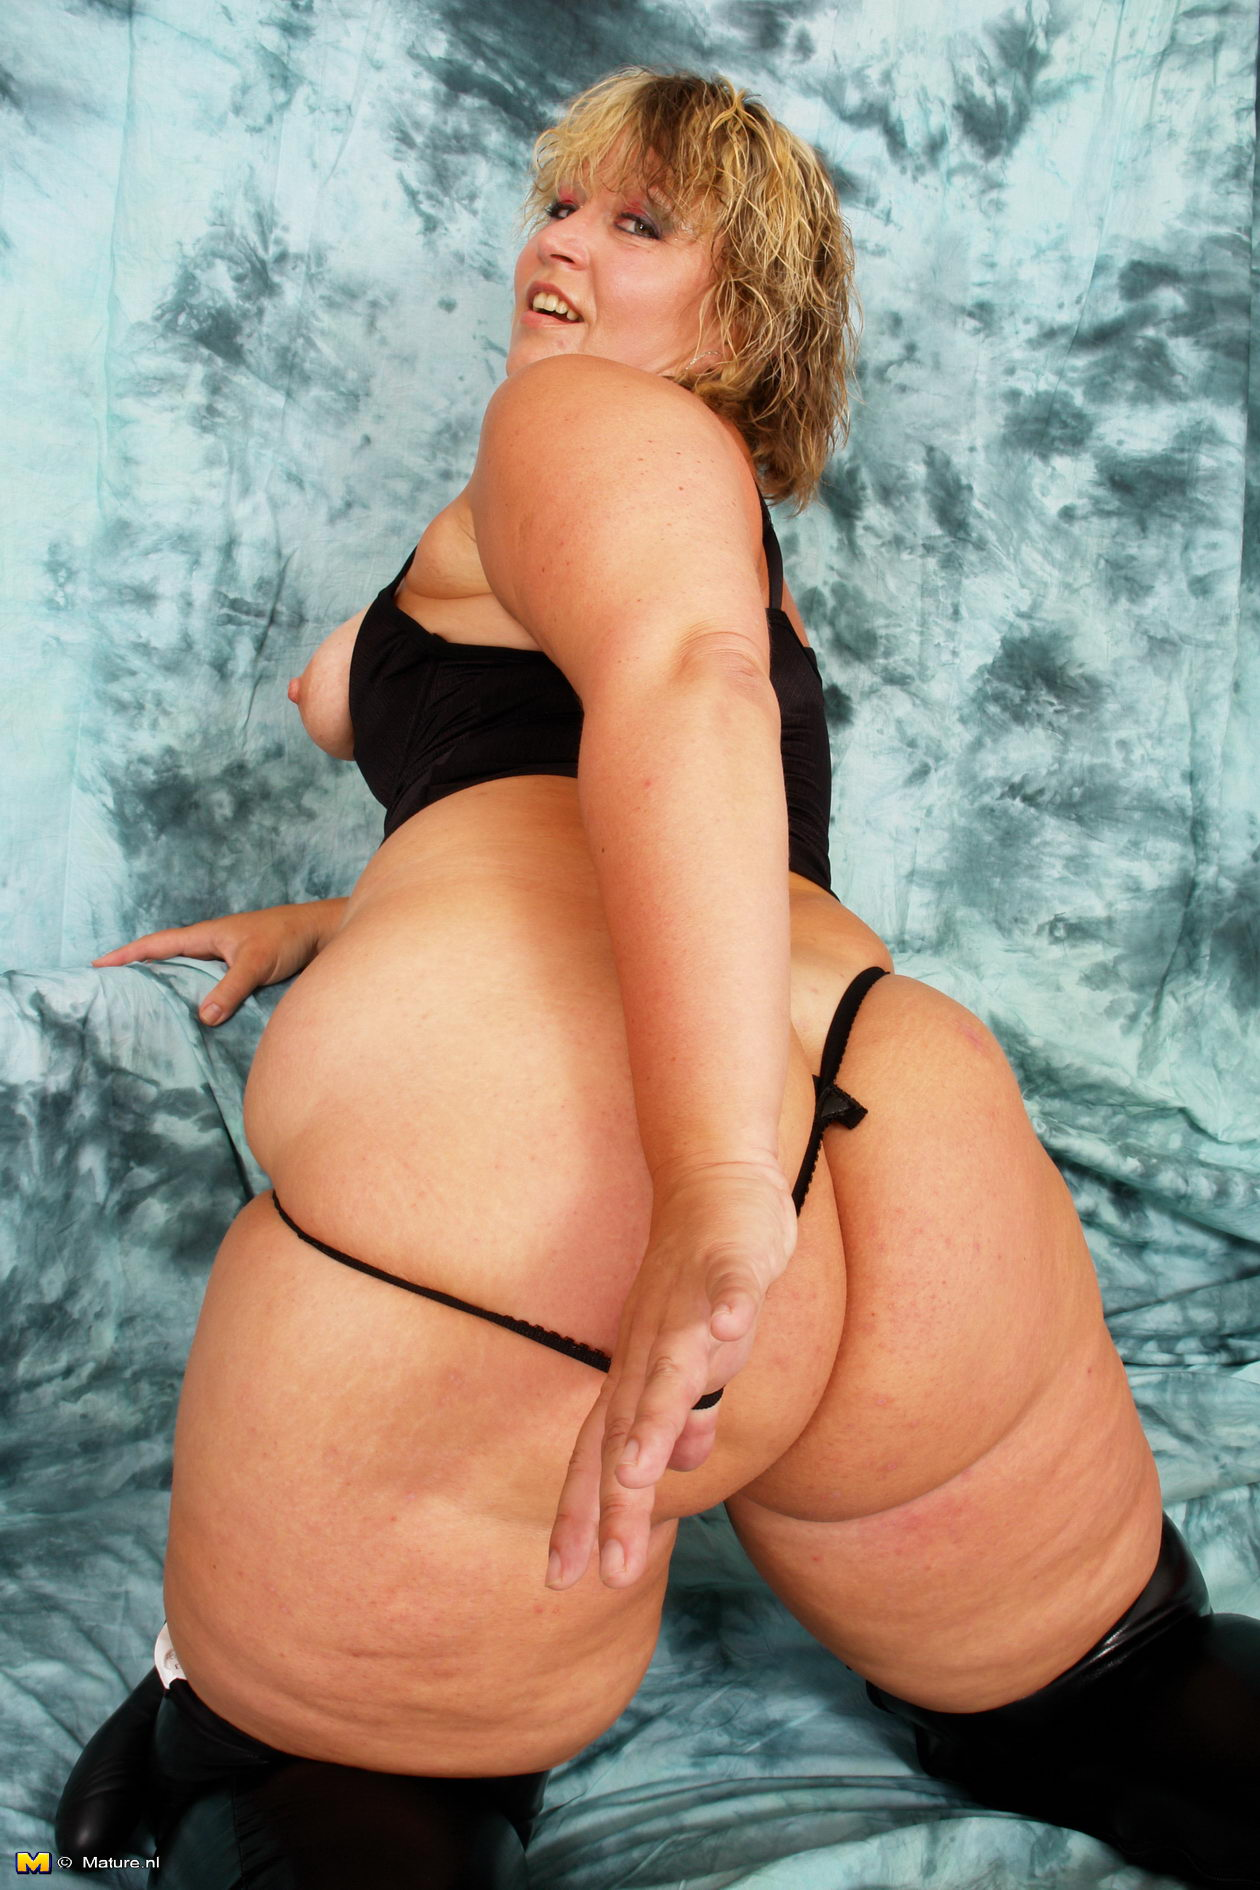 BBW huge ass & hips girls